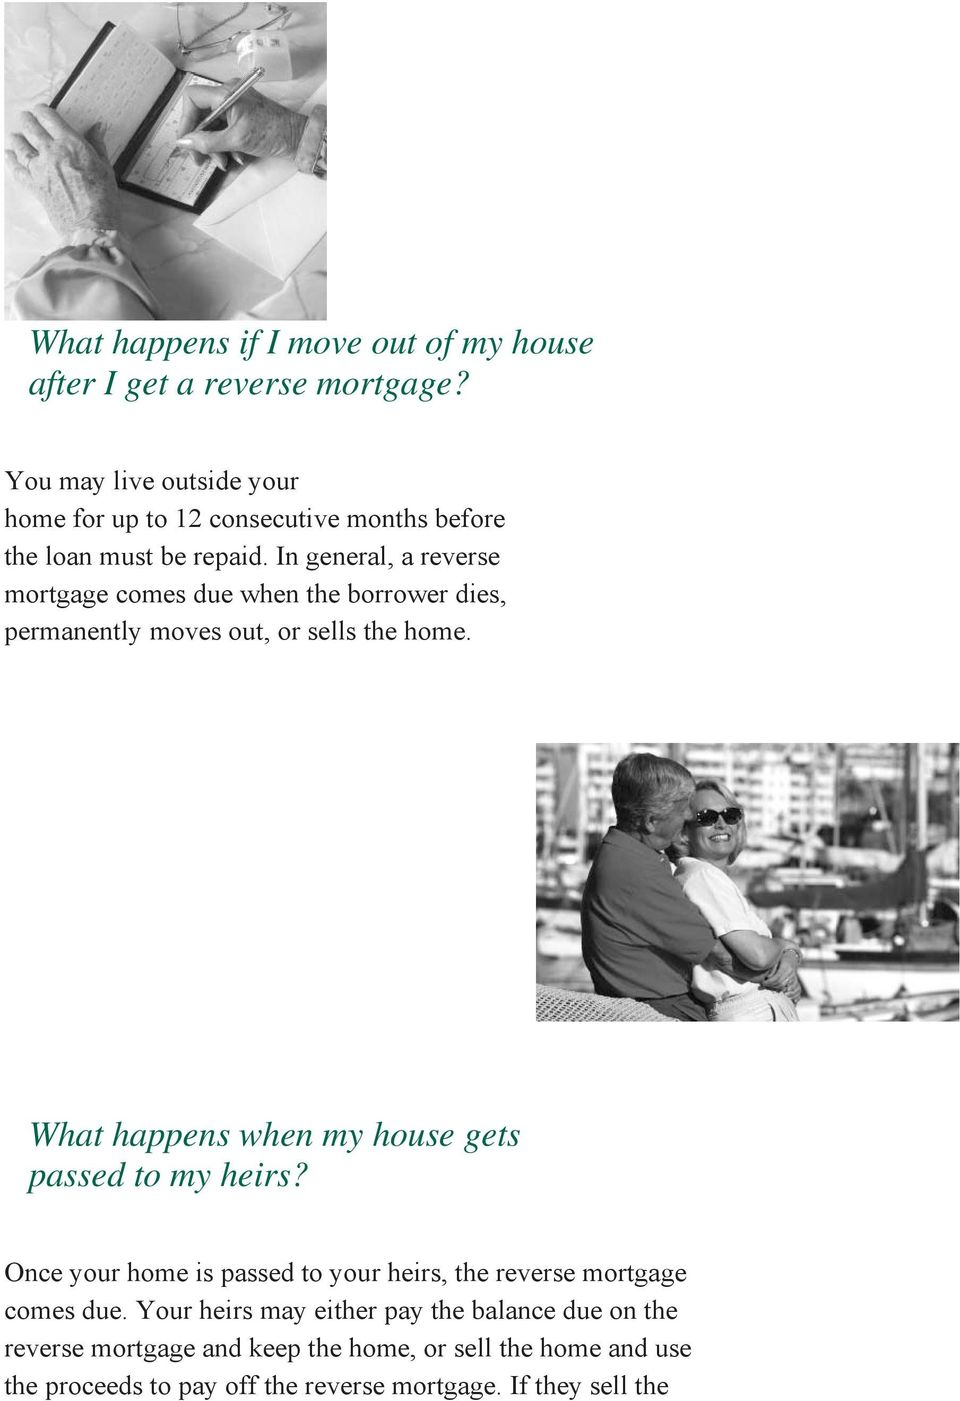 In general, a reverse mortgage comes due when the borrower dies, permanently moves out, or sells the home.